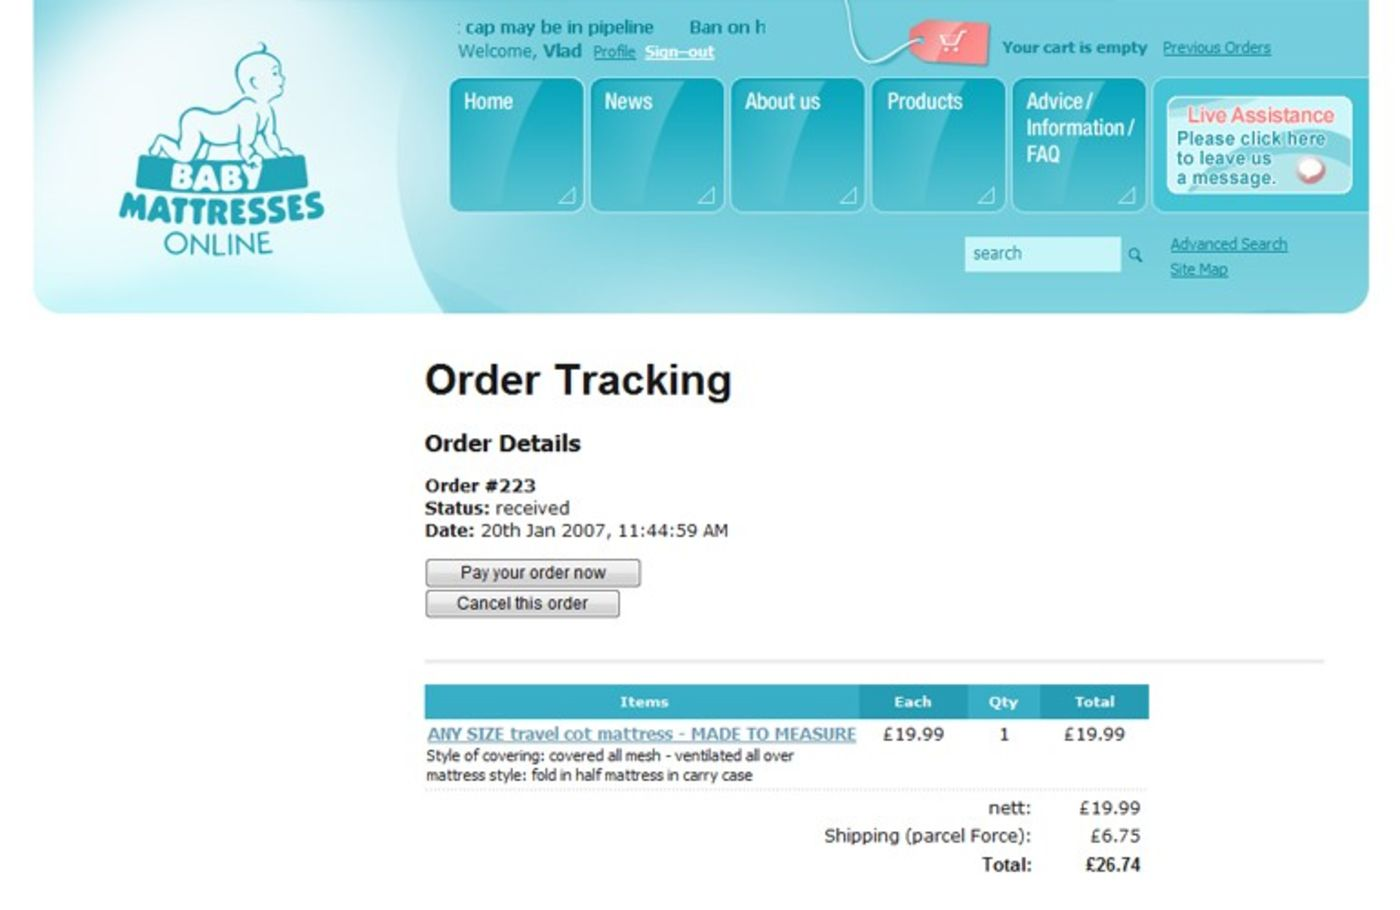 Baby Mattresses Online 2006 Order tracking